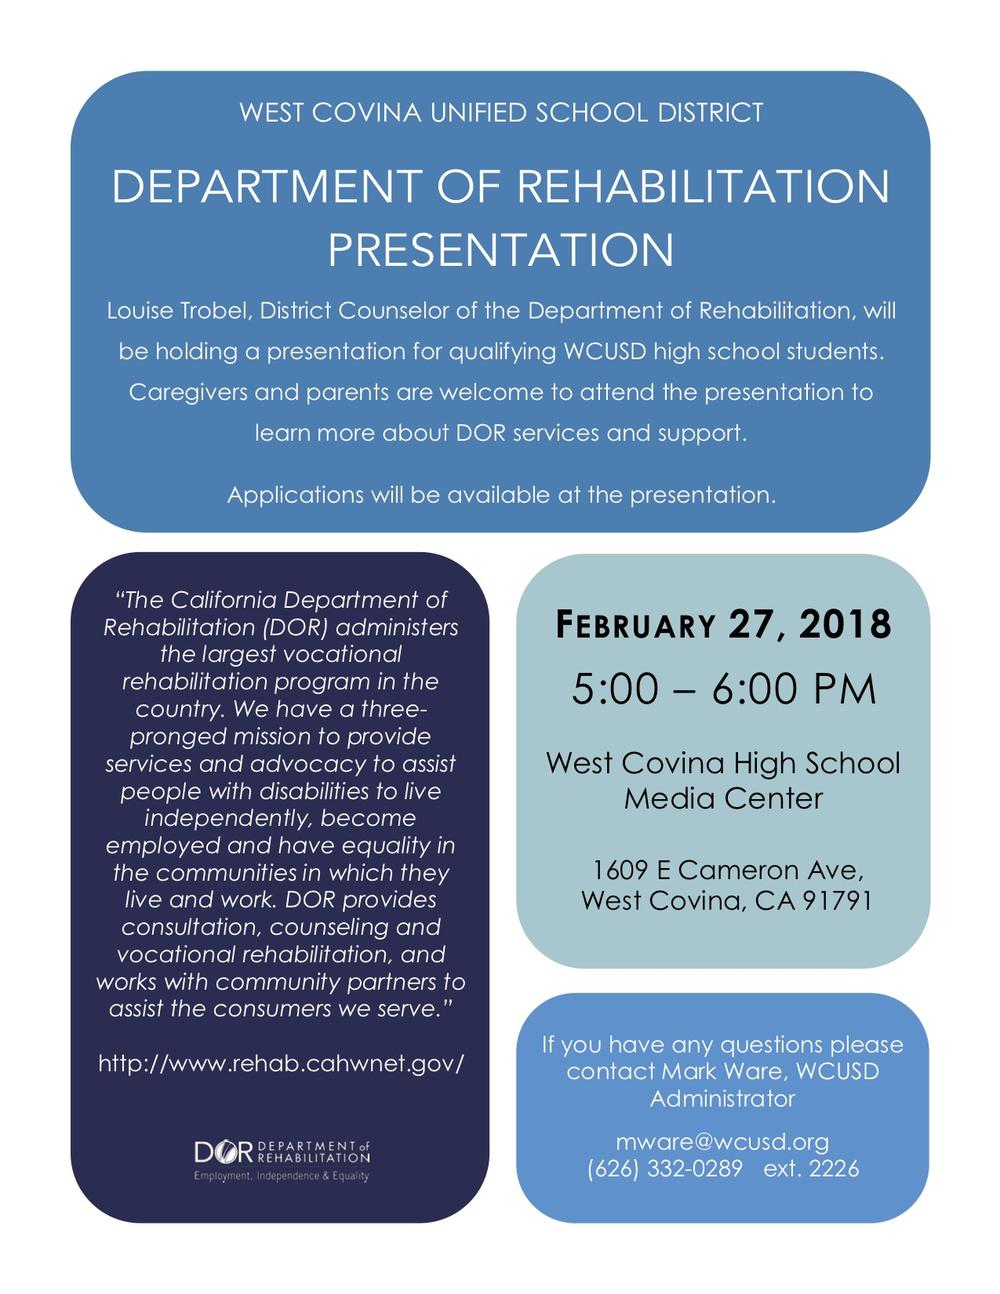 The Department of Rehabilitation will hold a presentation to learn about DOR services and support.